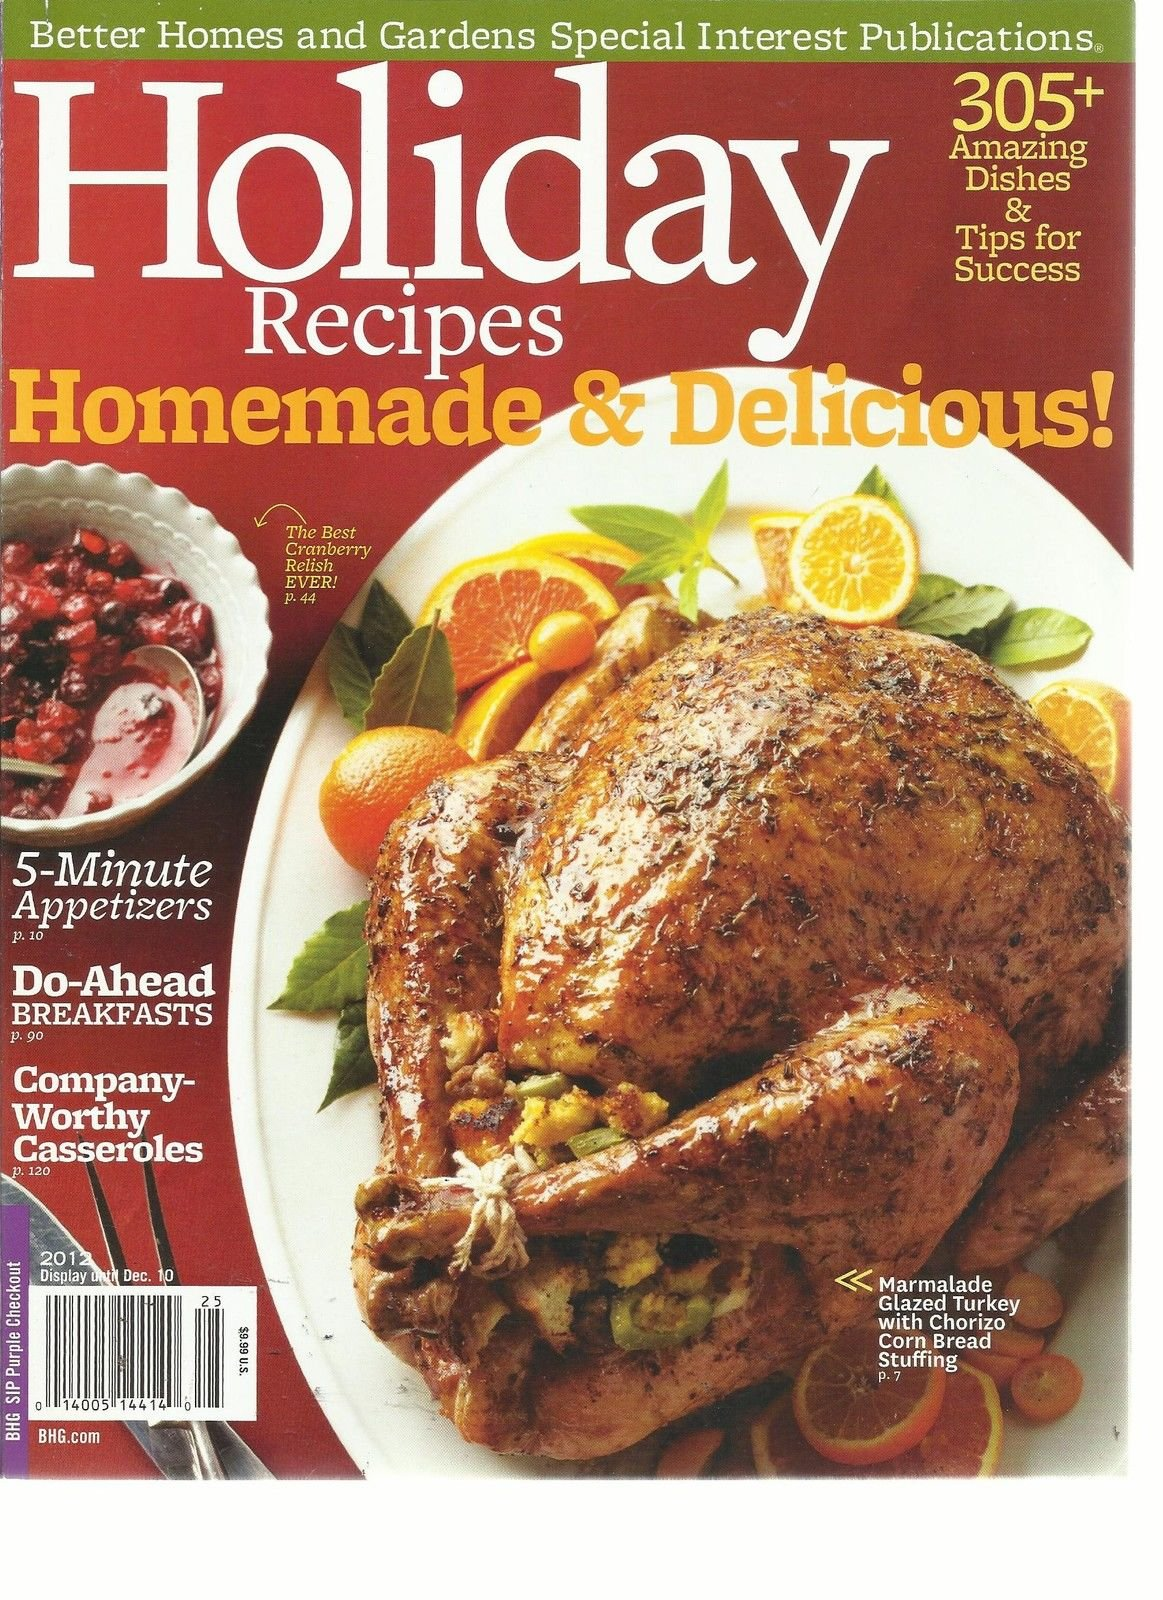 HOLIDAY RECIPES,(BETTER HOMES & GARDEN SPECIAL INTEREST) HOMEMADE & DELICIOUS!